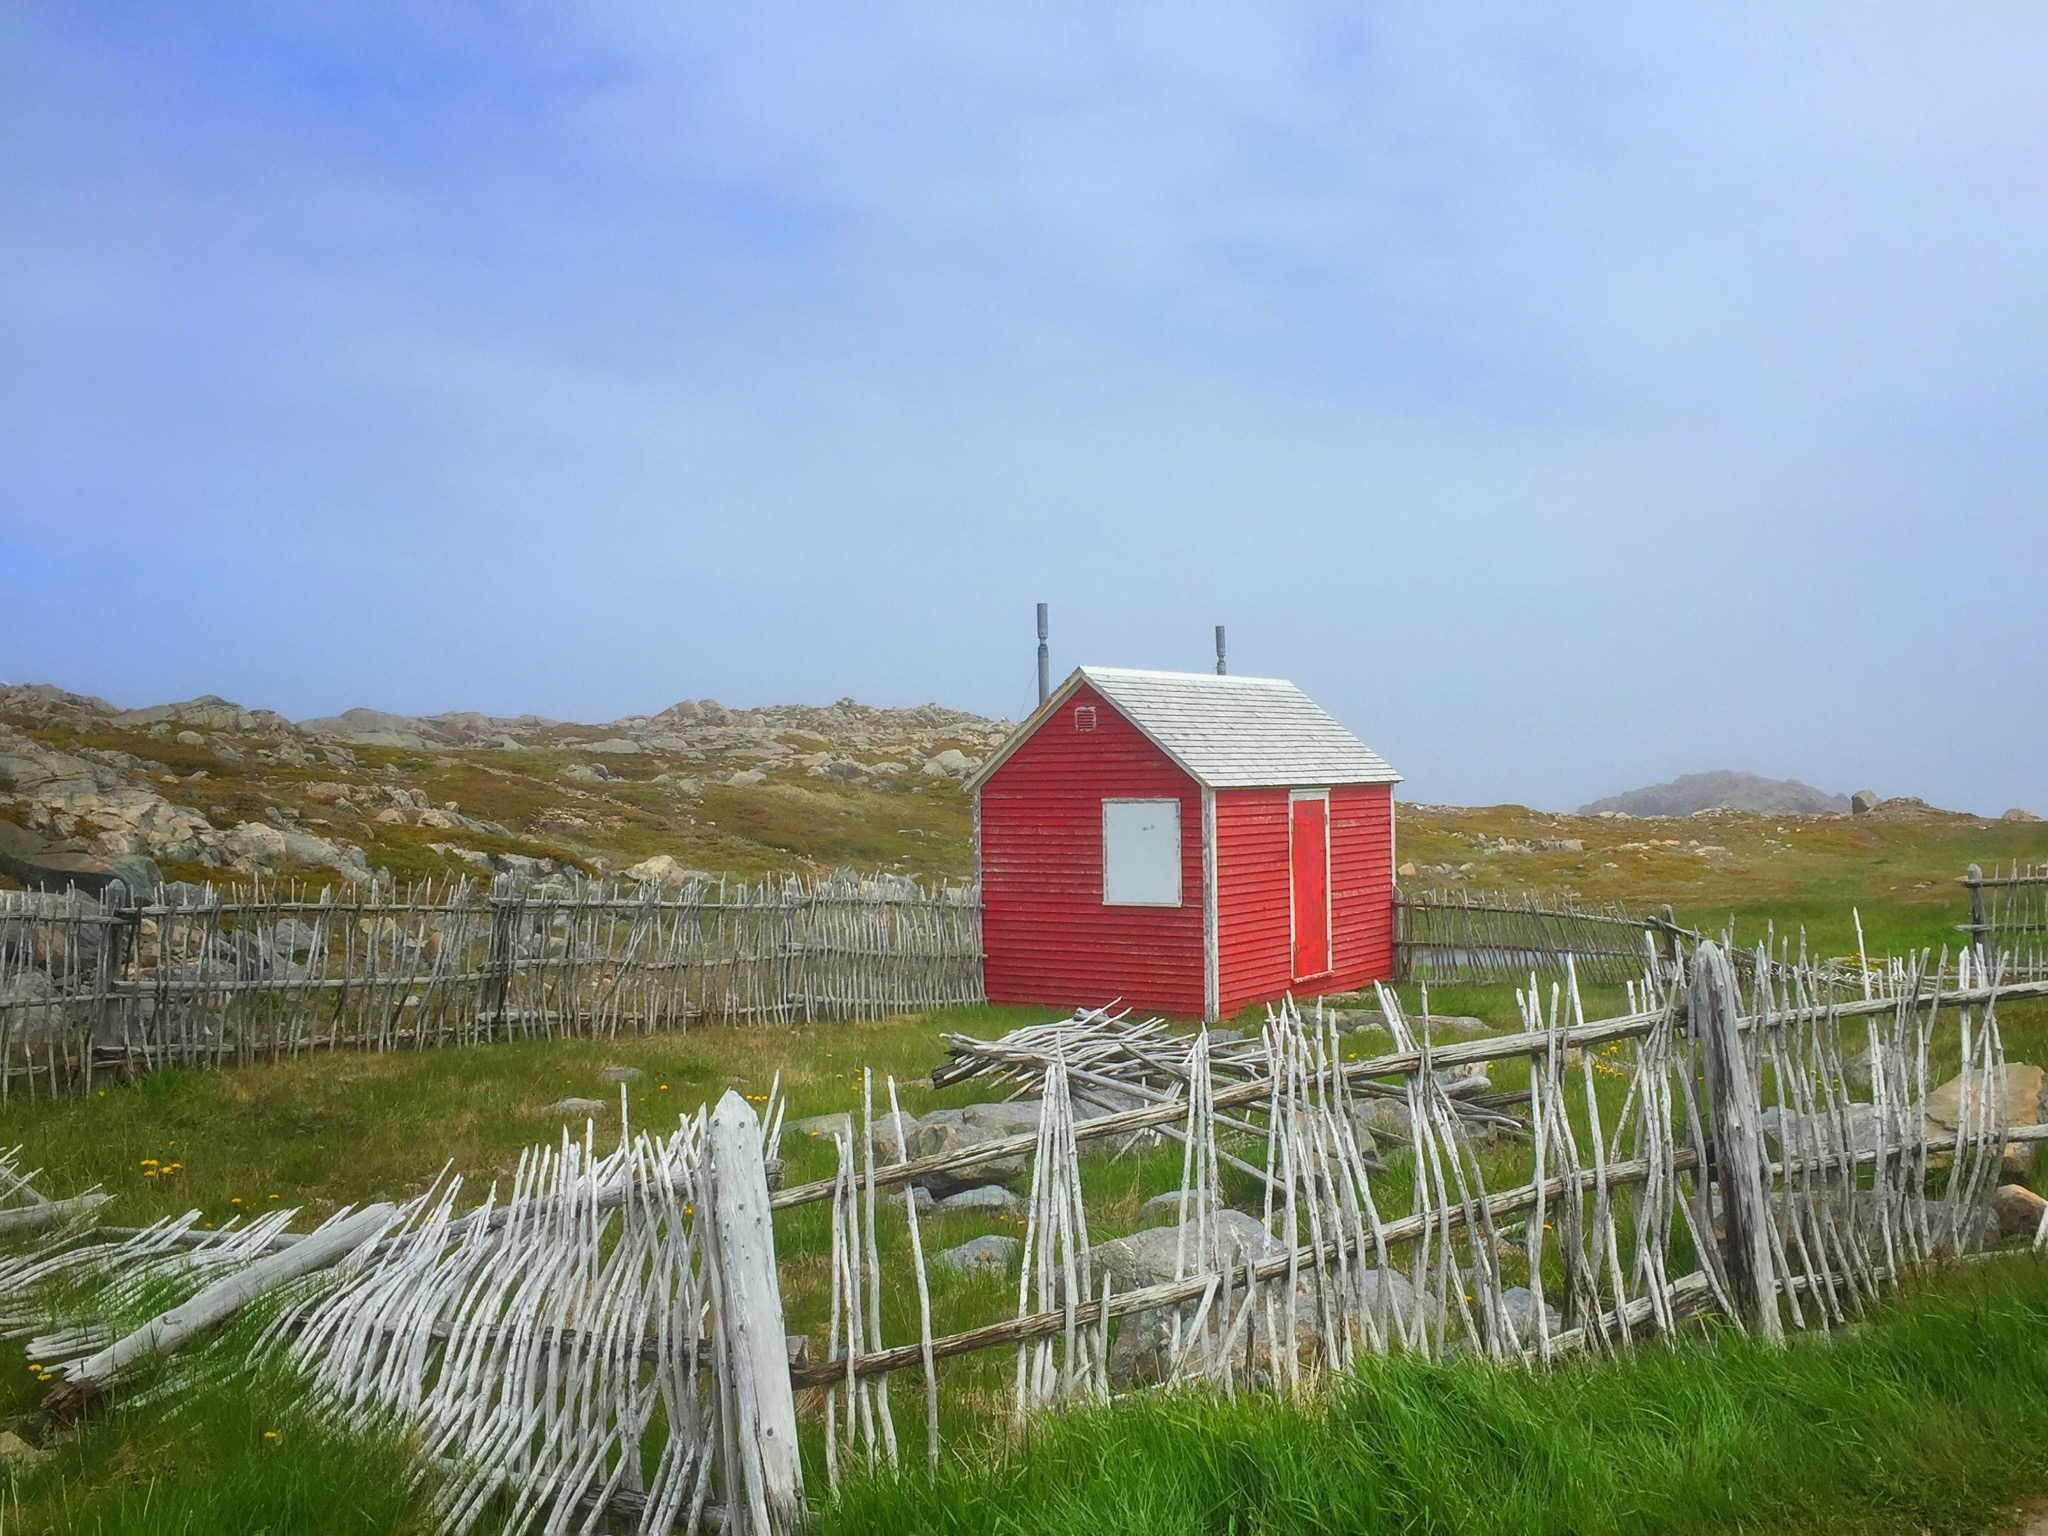 Hut near Lighthouse on Cape Bonavista